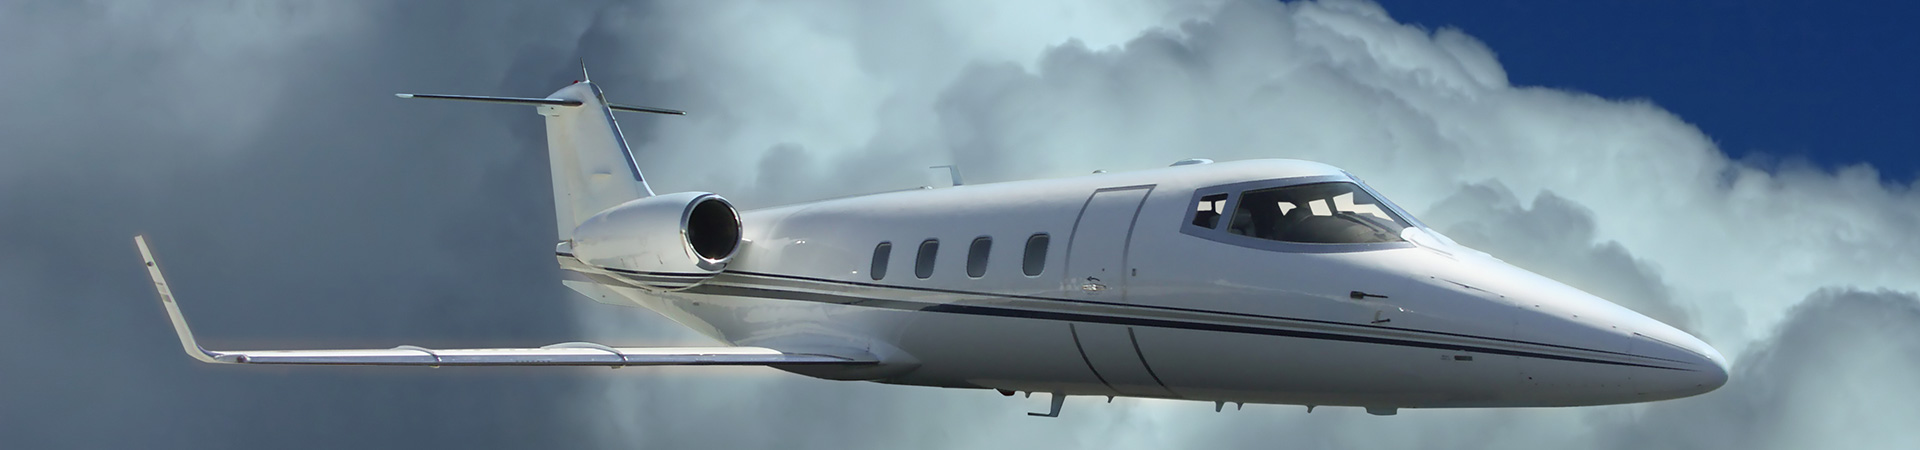 Starr Luxury Jets Small Private Jet Aircraft Hire